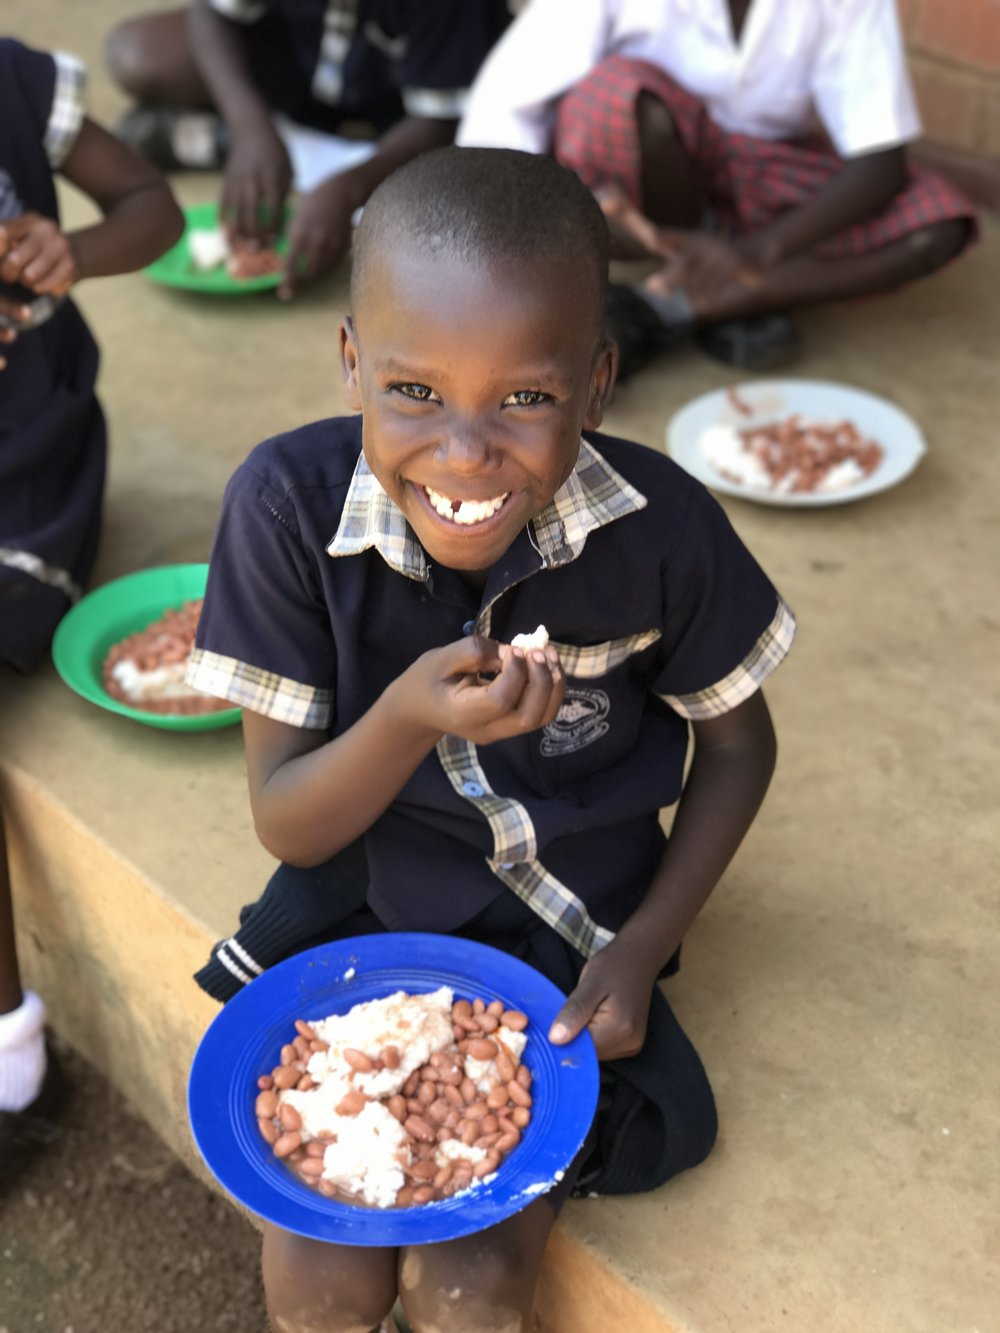 $72 = A Year of Lunch& snacks for a Student - Just $72 can feed a Cherish Primary student for a FULL year! Many of our students rely on school for the majority of their meals. When are students have full bellies, they perform better in the classroom.